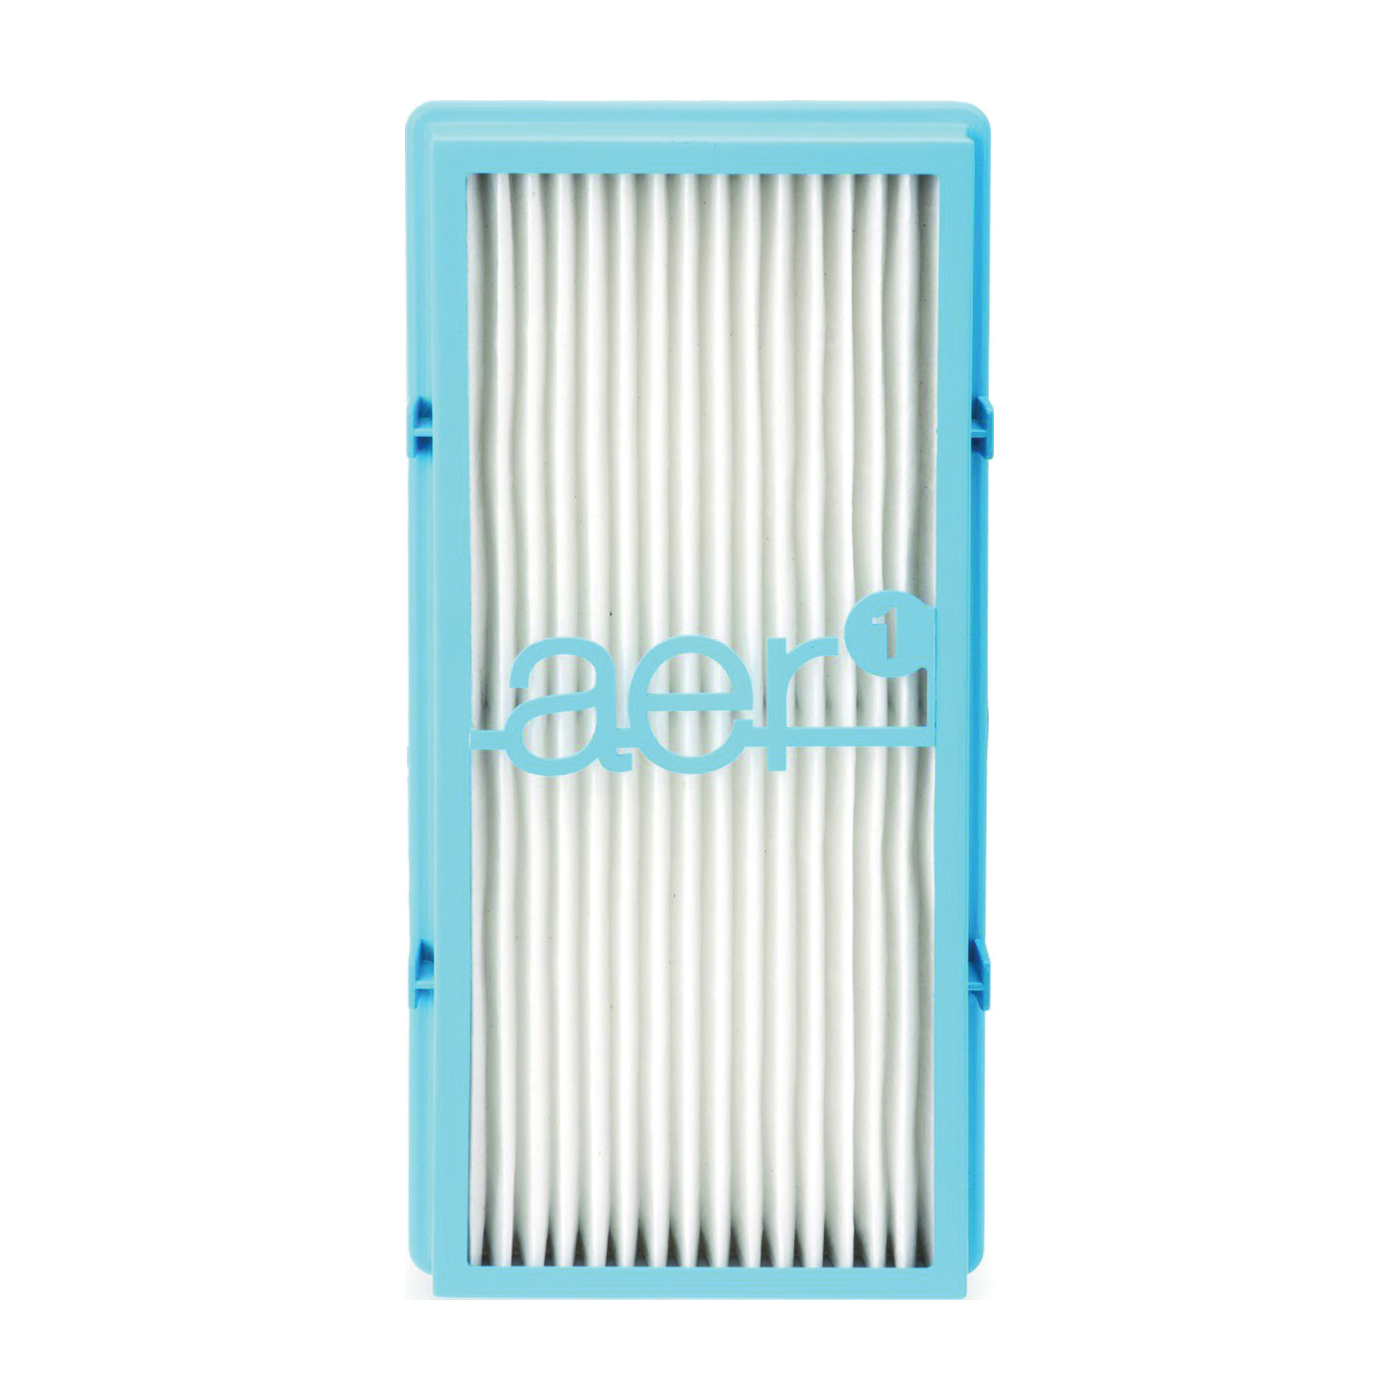 Picture of aer1 HAPF30ATPDQ-U4 Air and Dust Elimination Filter, 99 % Filter Efficiency, Blue/White